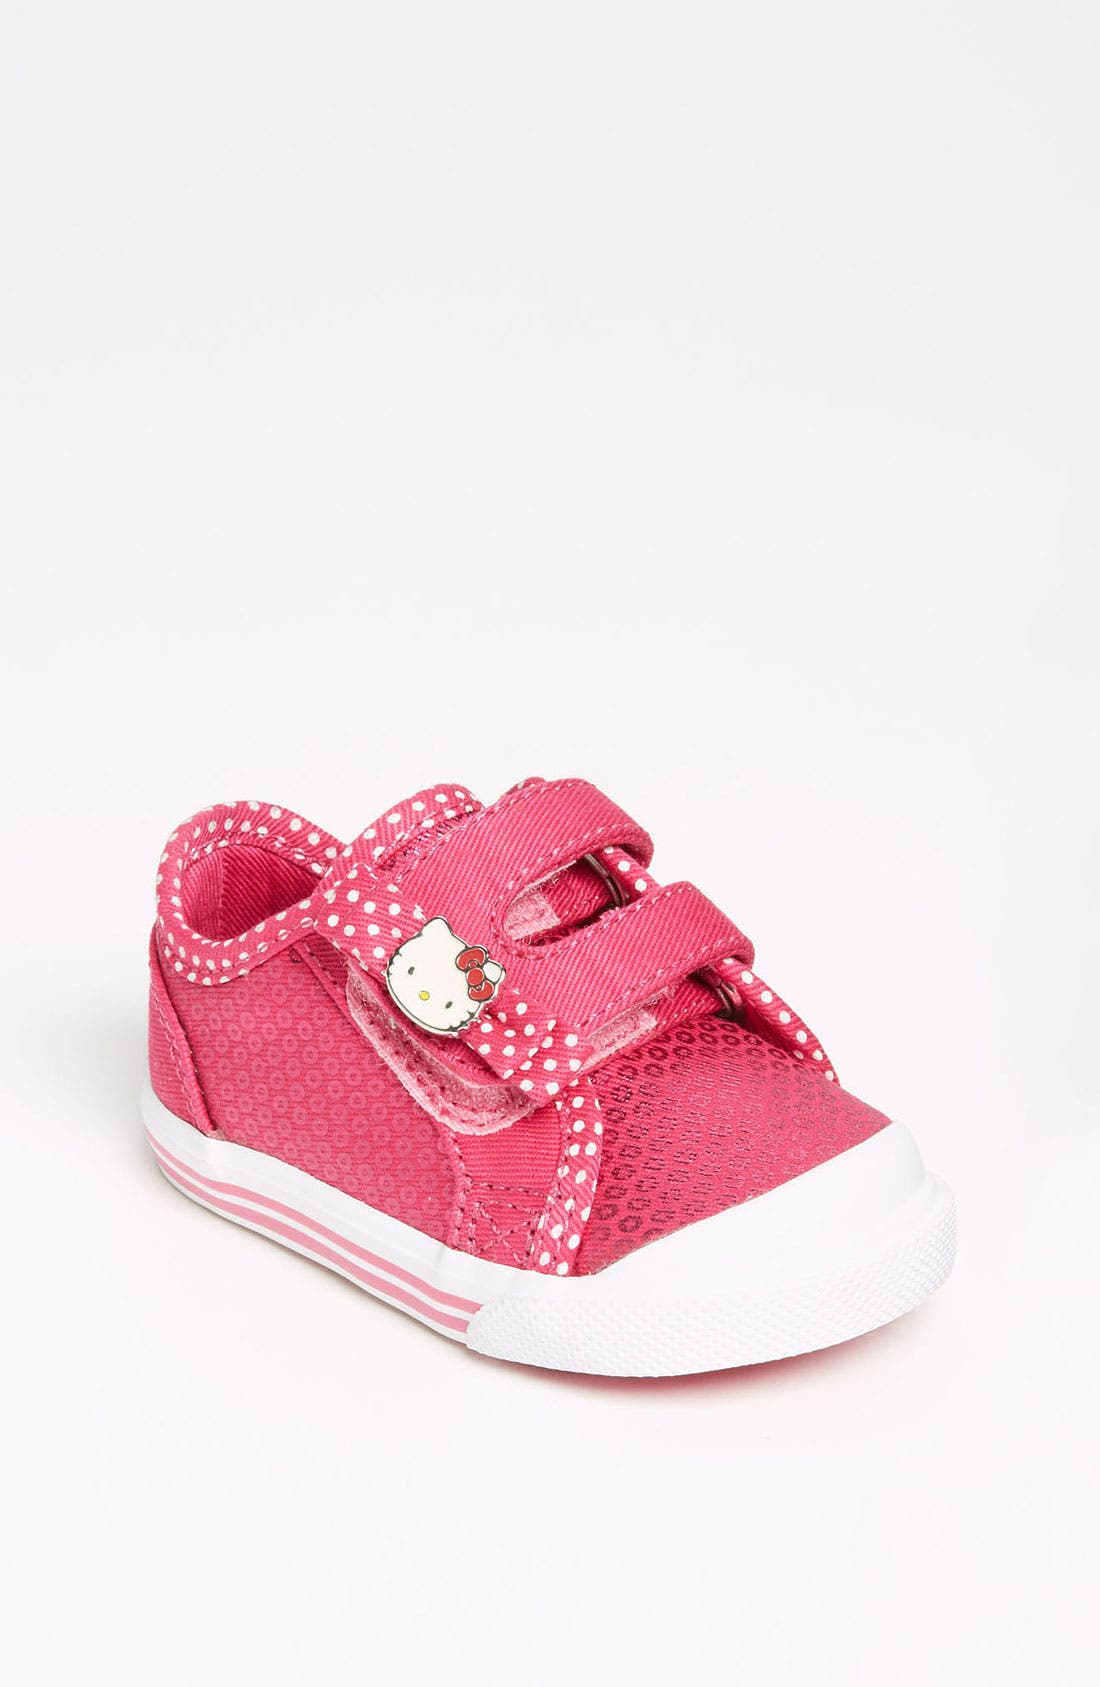 Alternate Image 1 Selected - Keds® 'Mimmy' Crib Shoe (Baby)